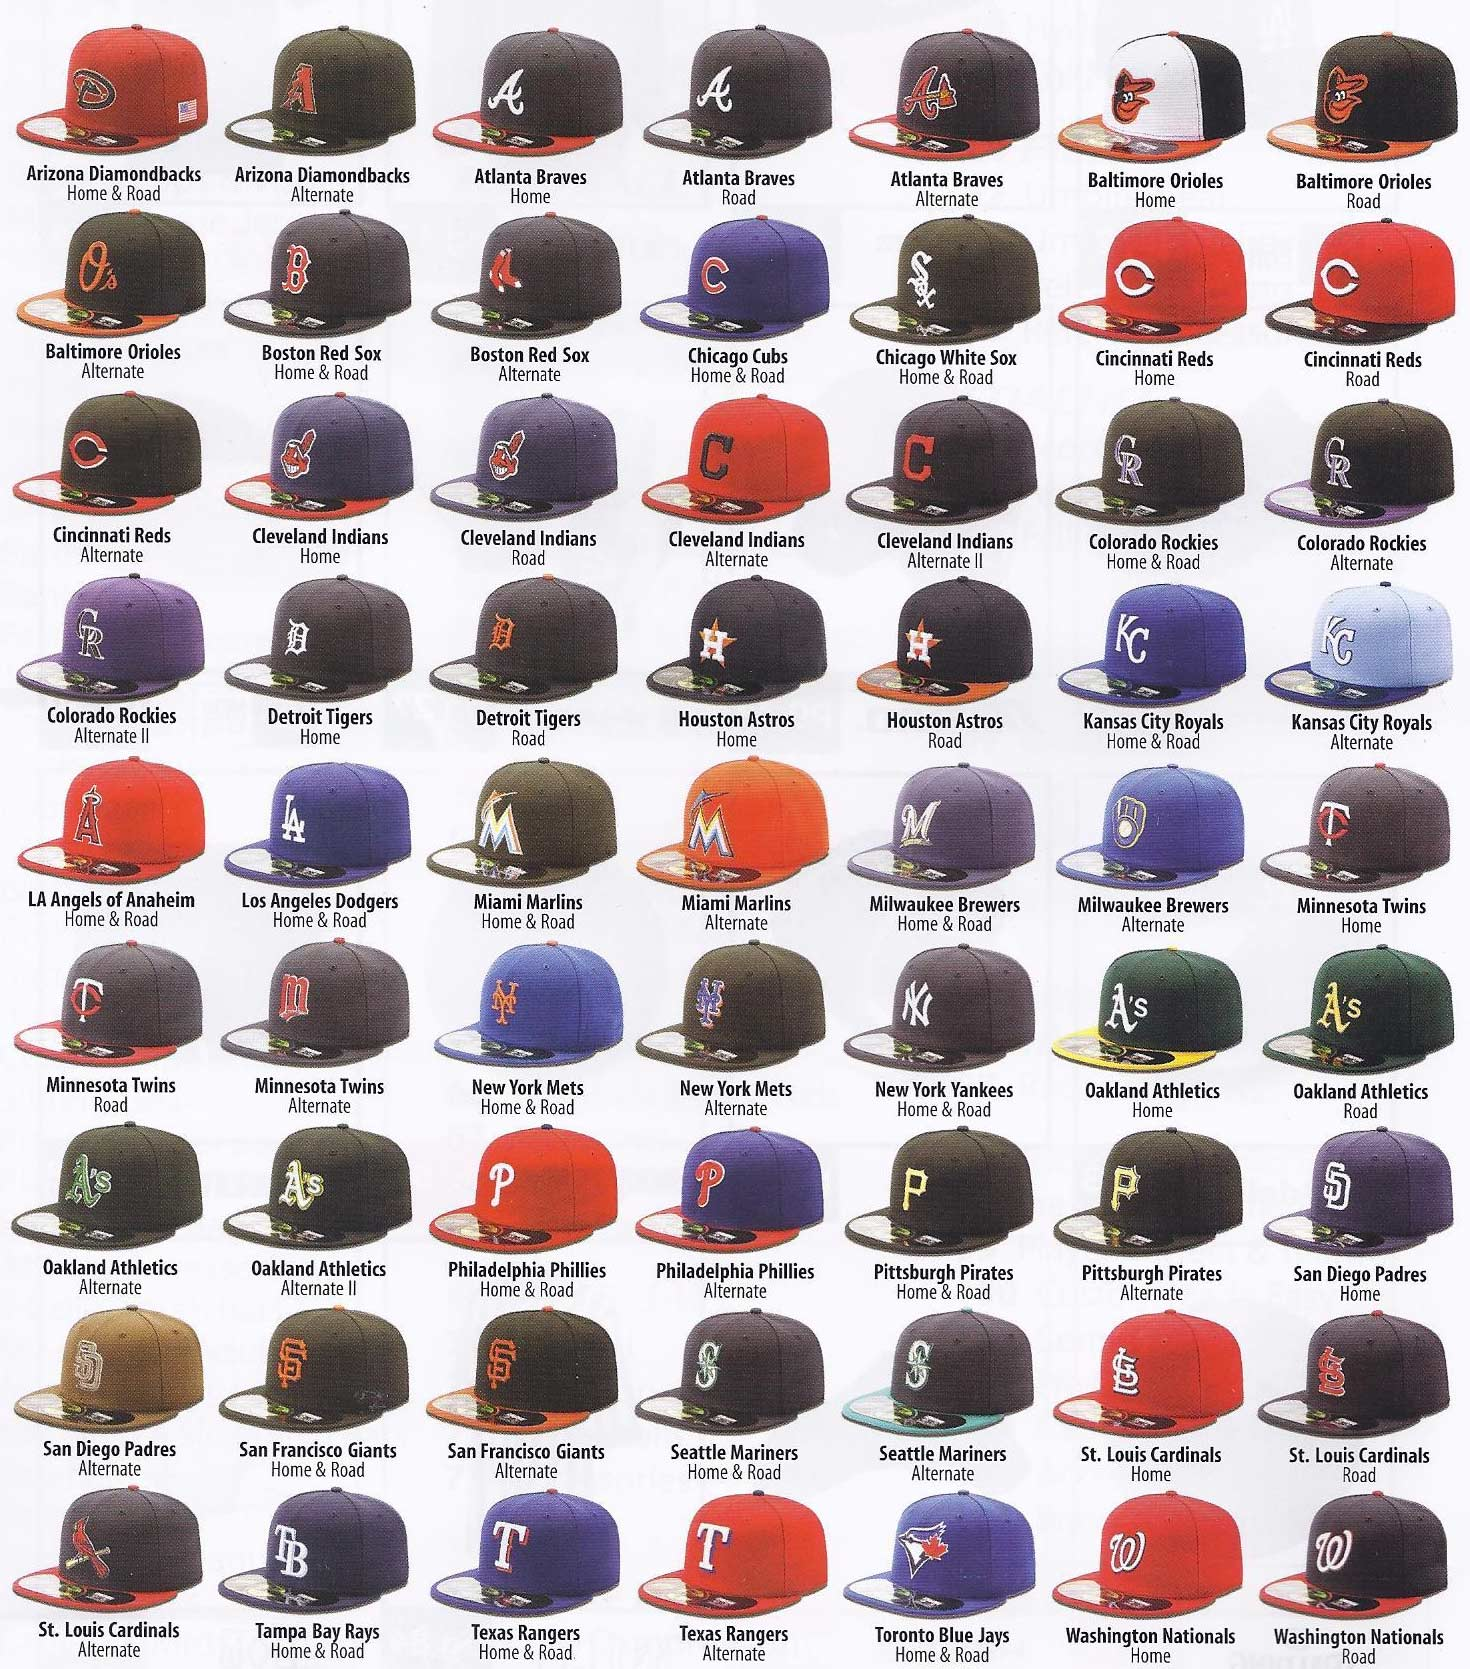 Mlb fitted caps from art's pro sports